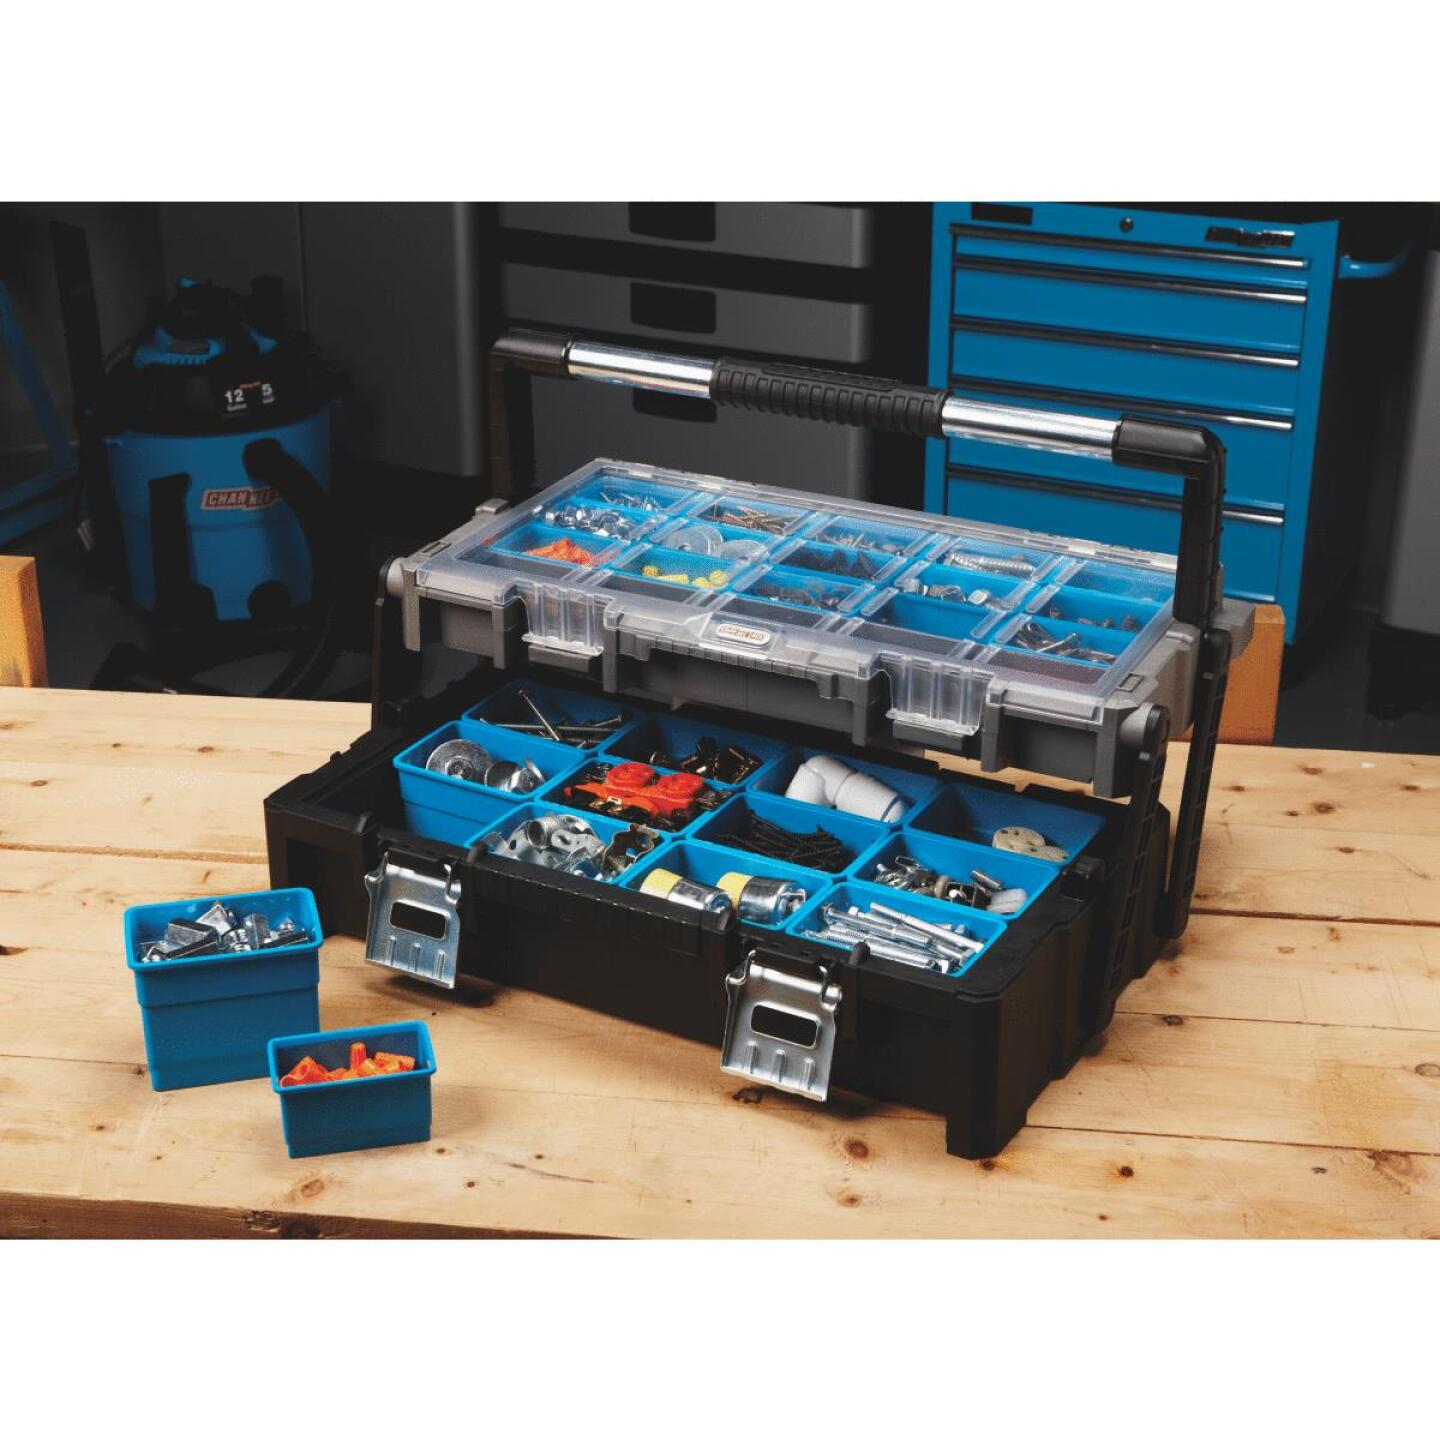 Channellock 22.5 In. Cantilever Parts Organizer Storage Box Image 3